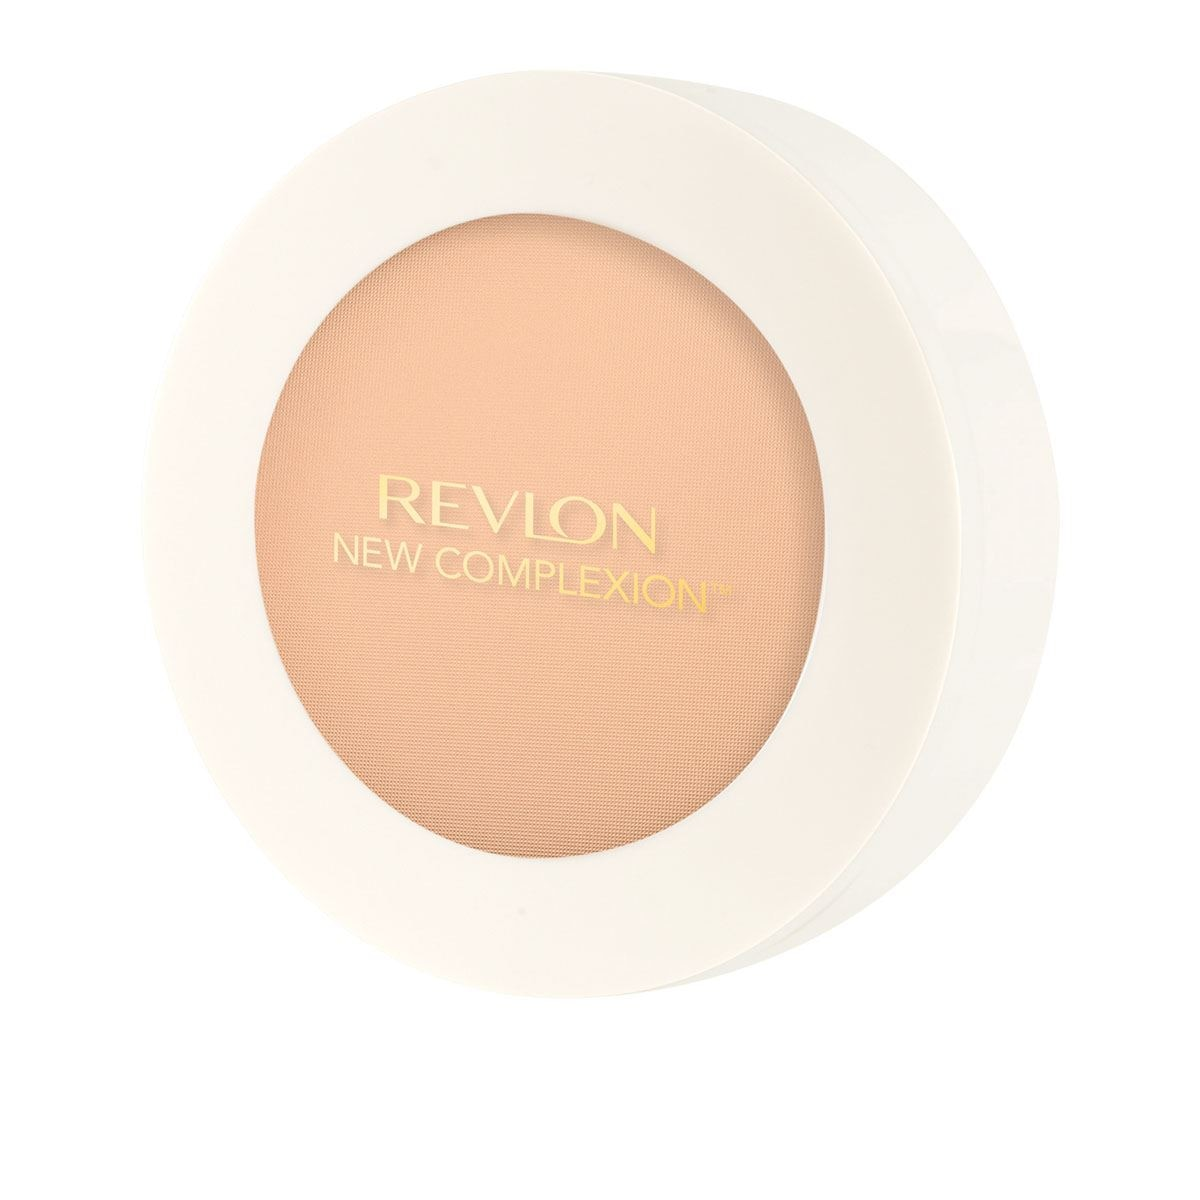 Maquillaje compacto new complexion natural tan  - Sanborns